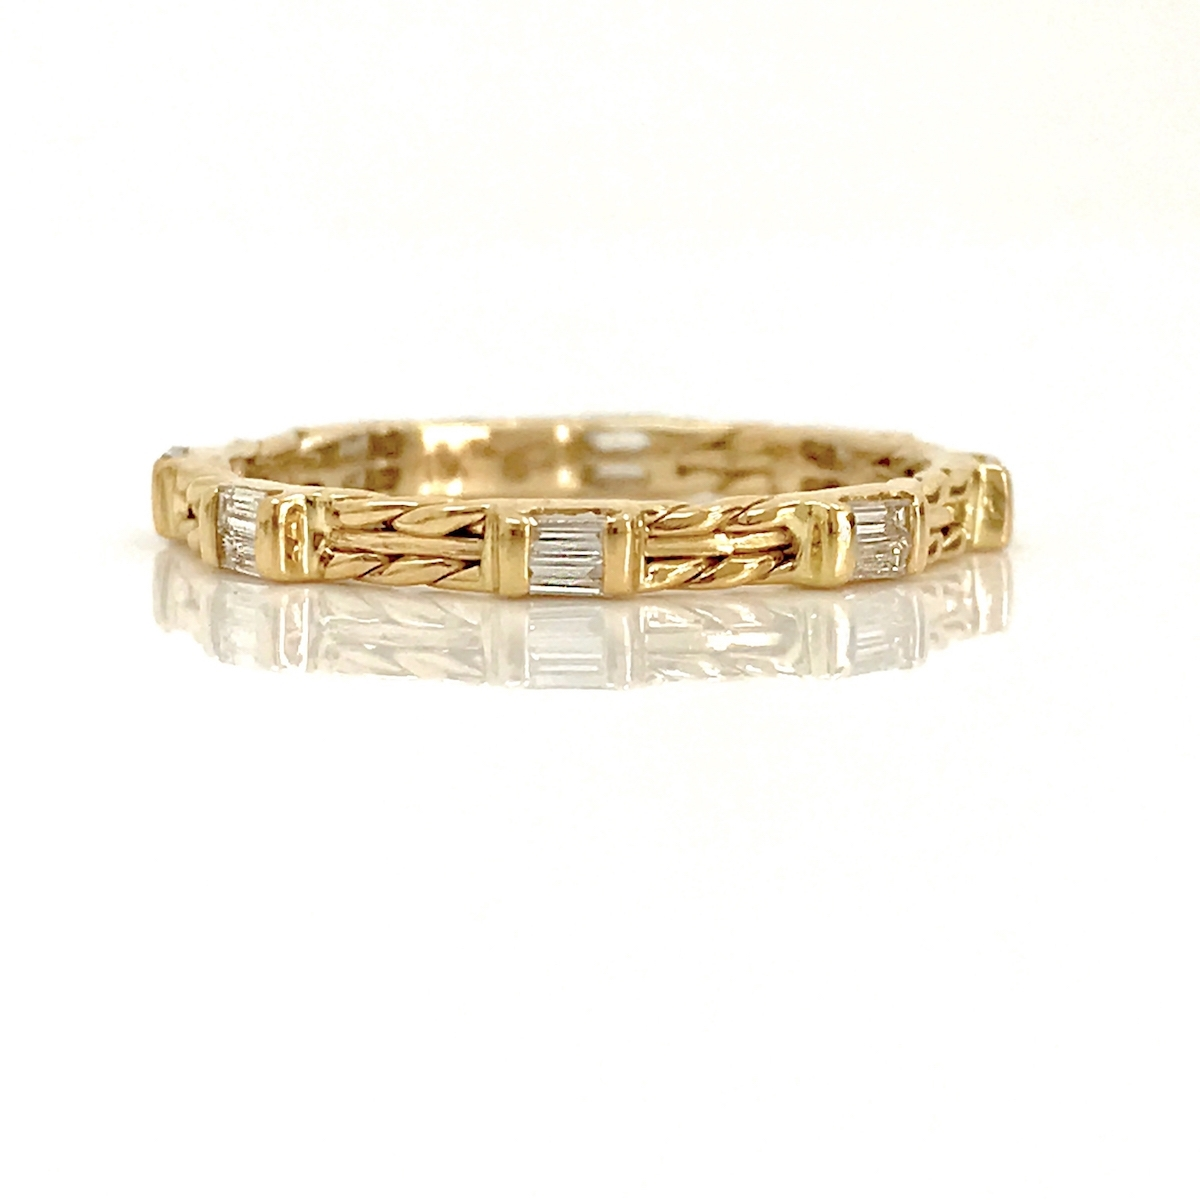 18K Gold Double Baguette Diamond Wedding Band Stacking Ring With Regard To 2018 Baguette Diamond Twist Wedding Bands (View 6 of 15)